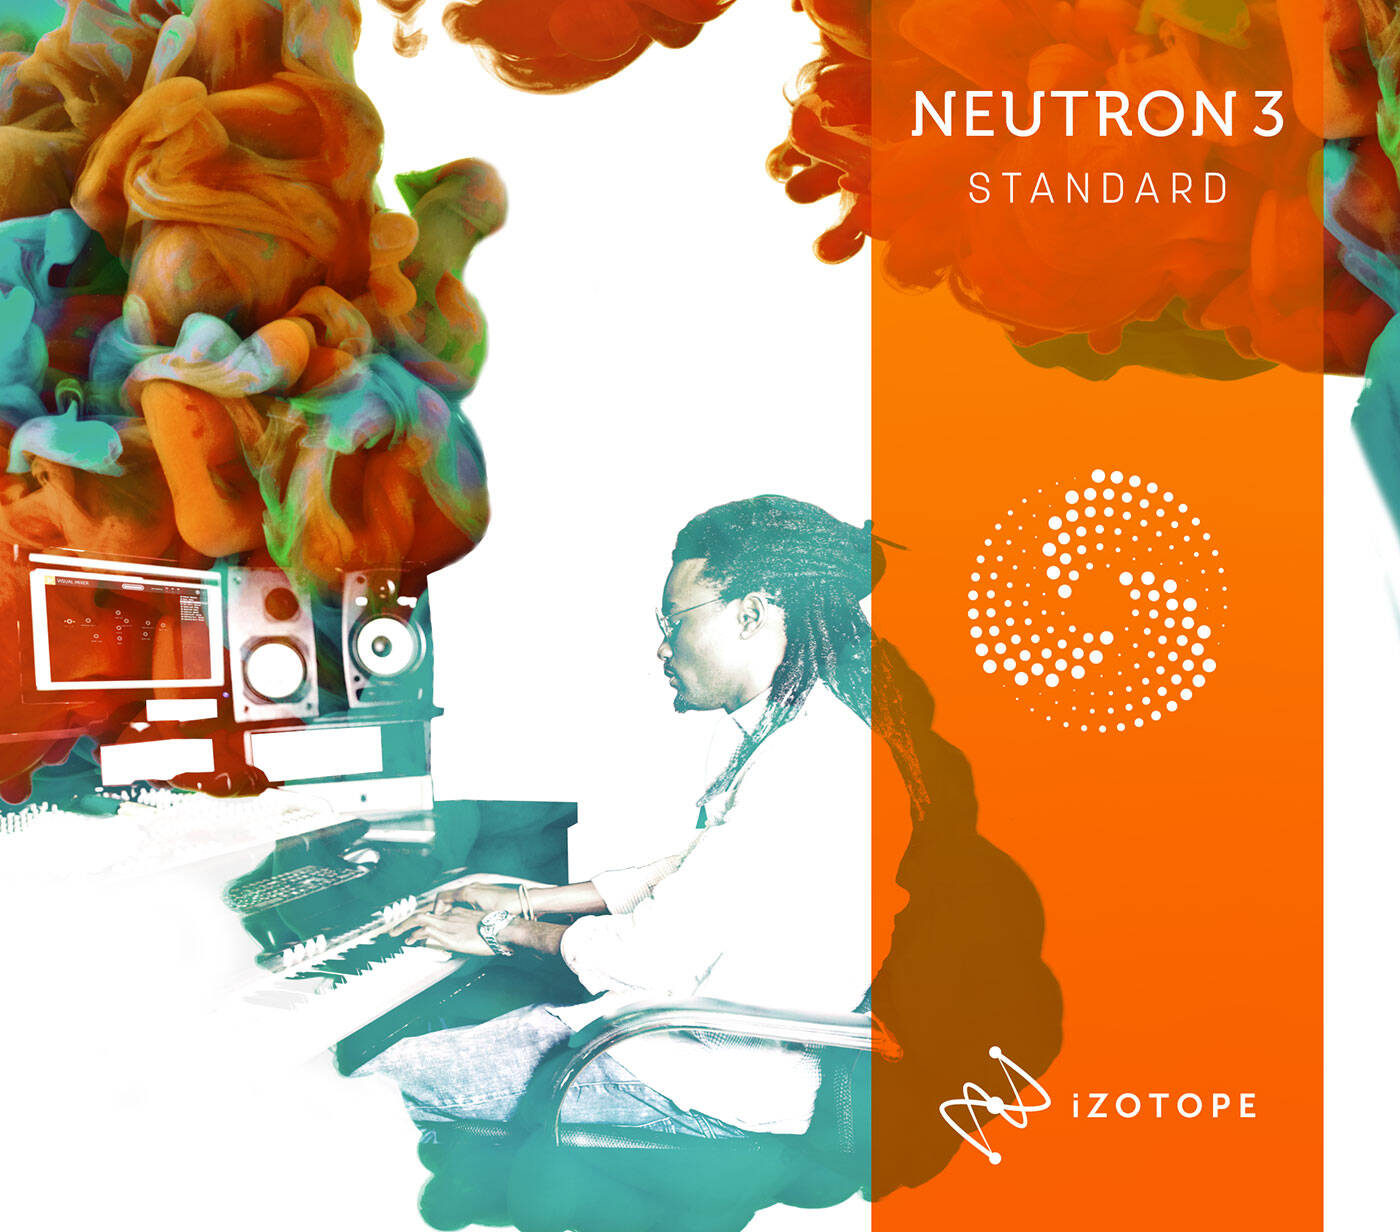 neutron-3-standard-e-cover